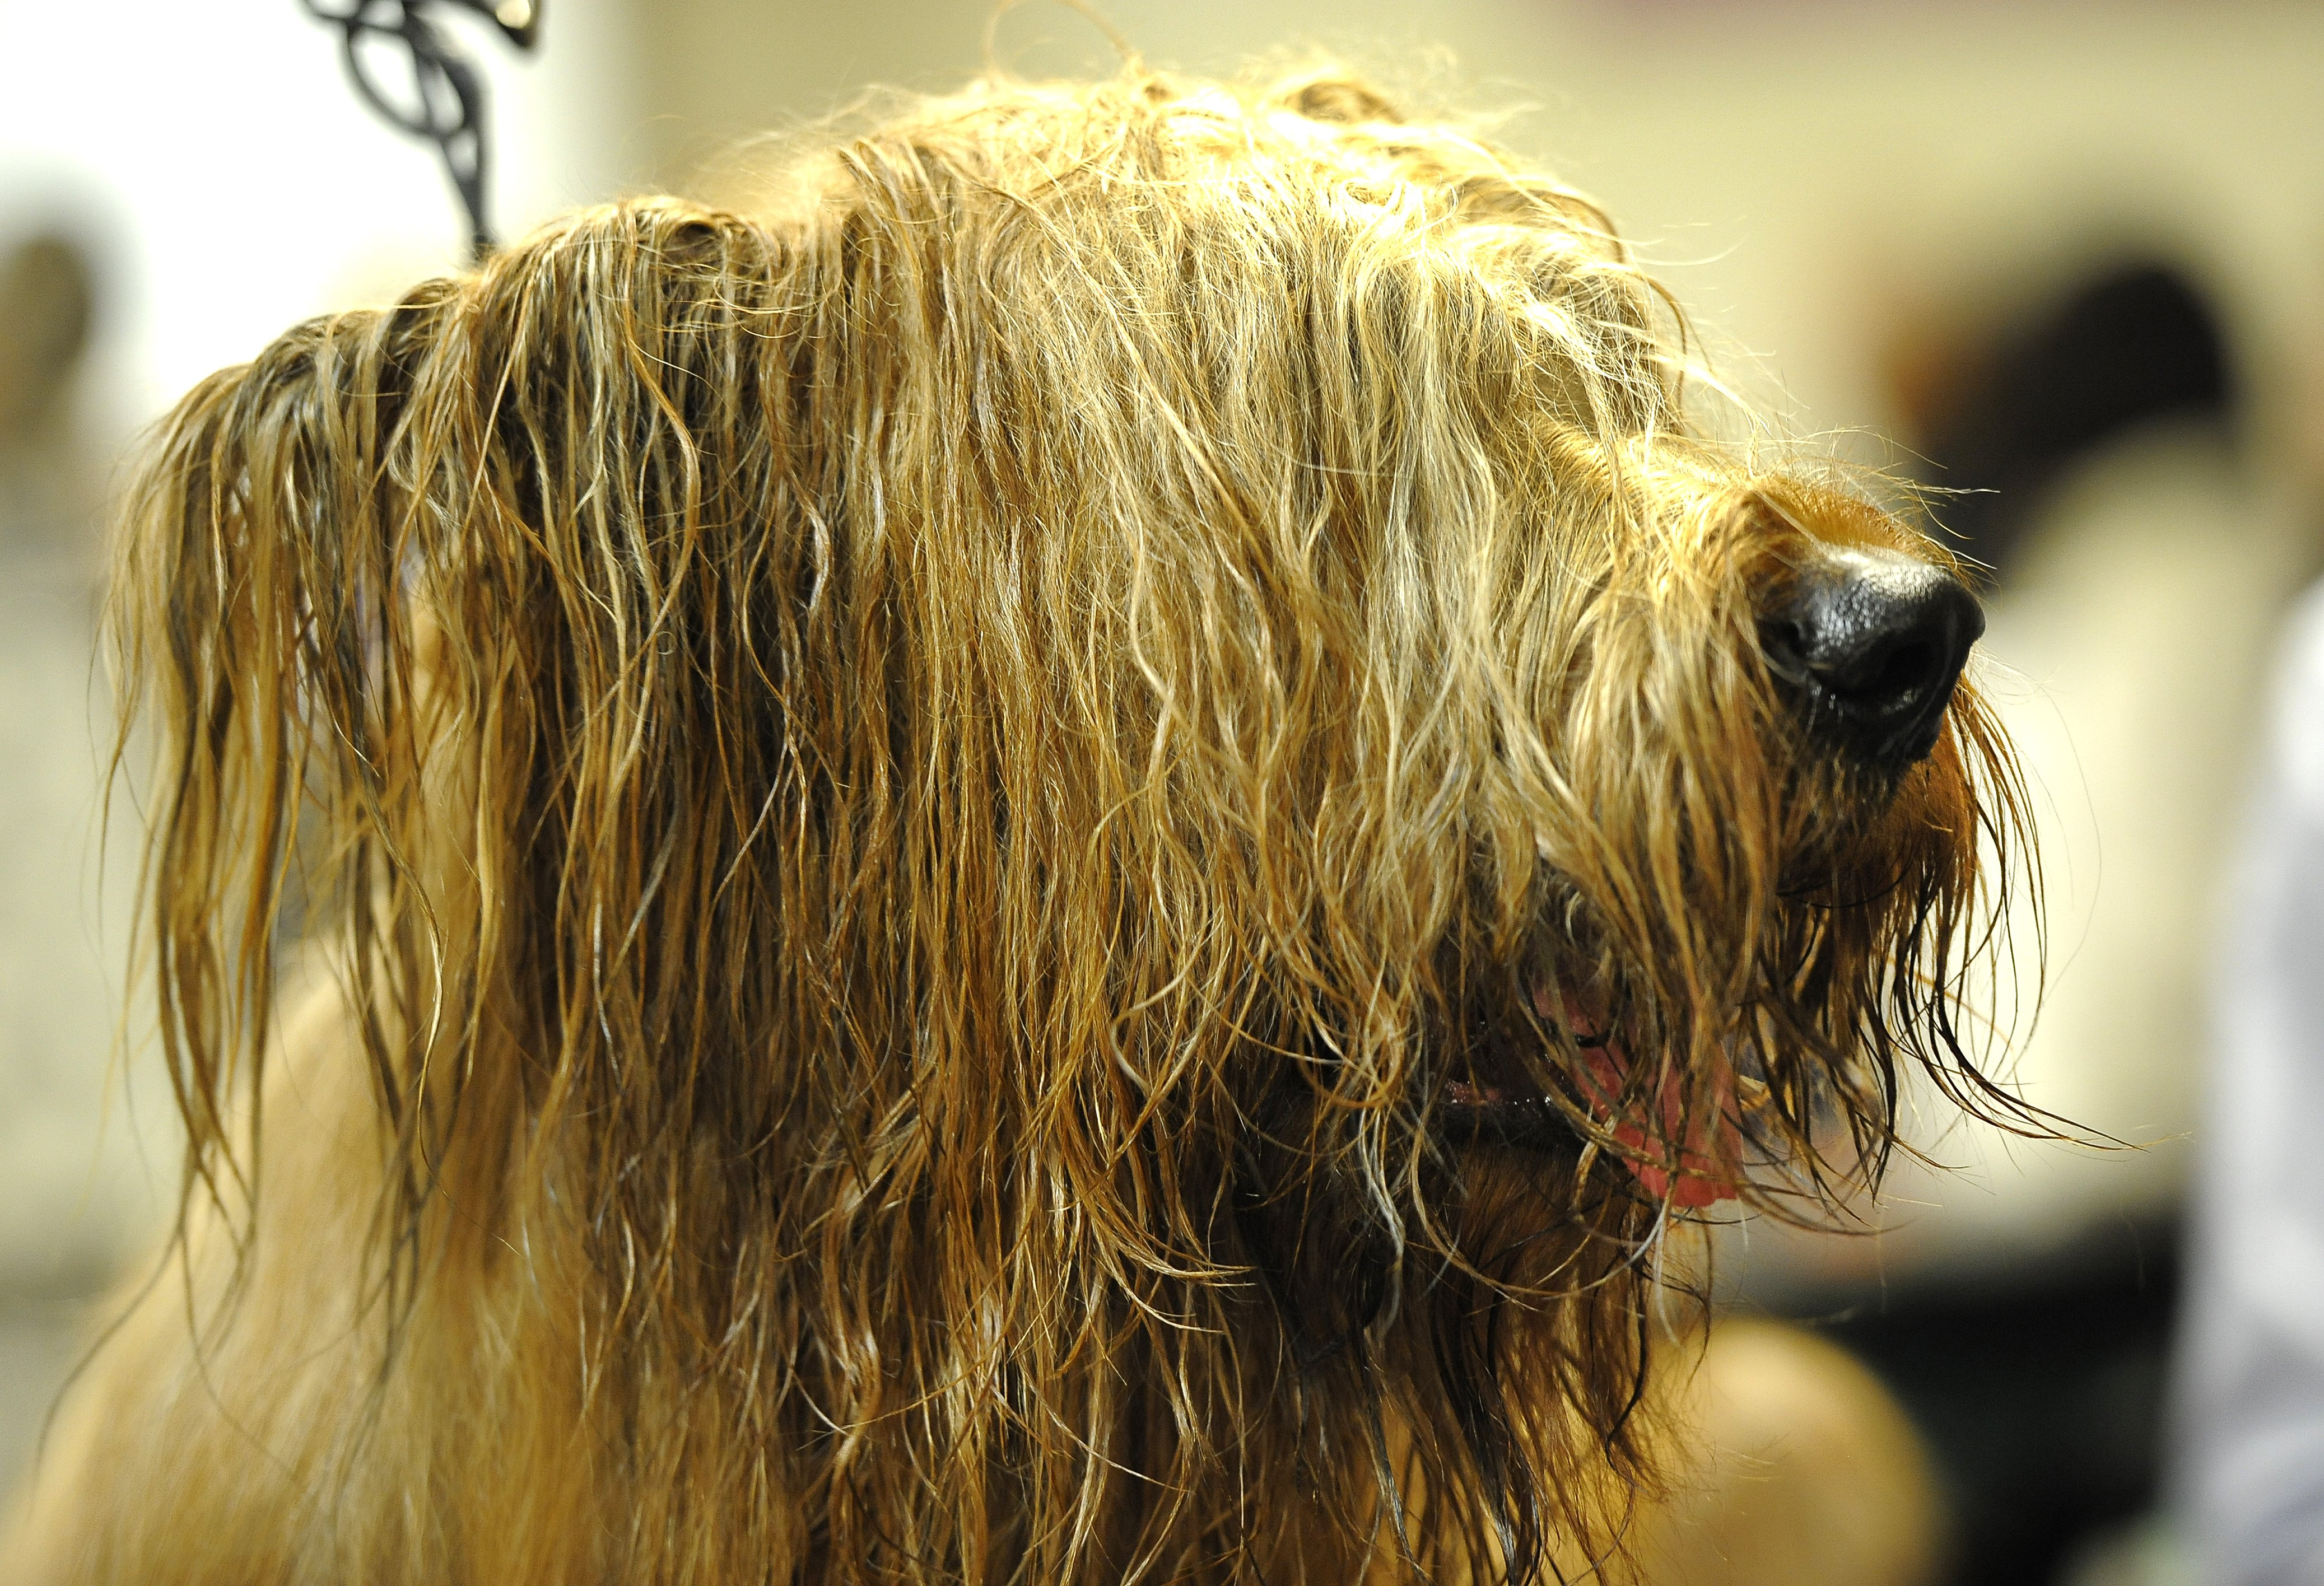 Rudee the Briard wrings himself out after bathtime.